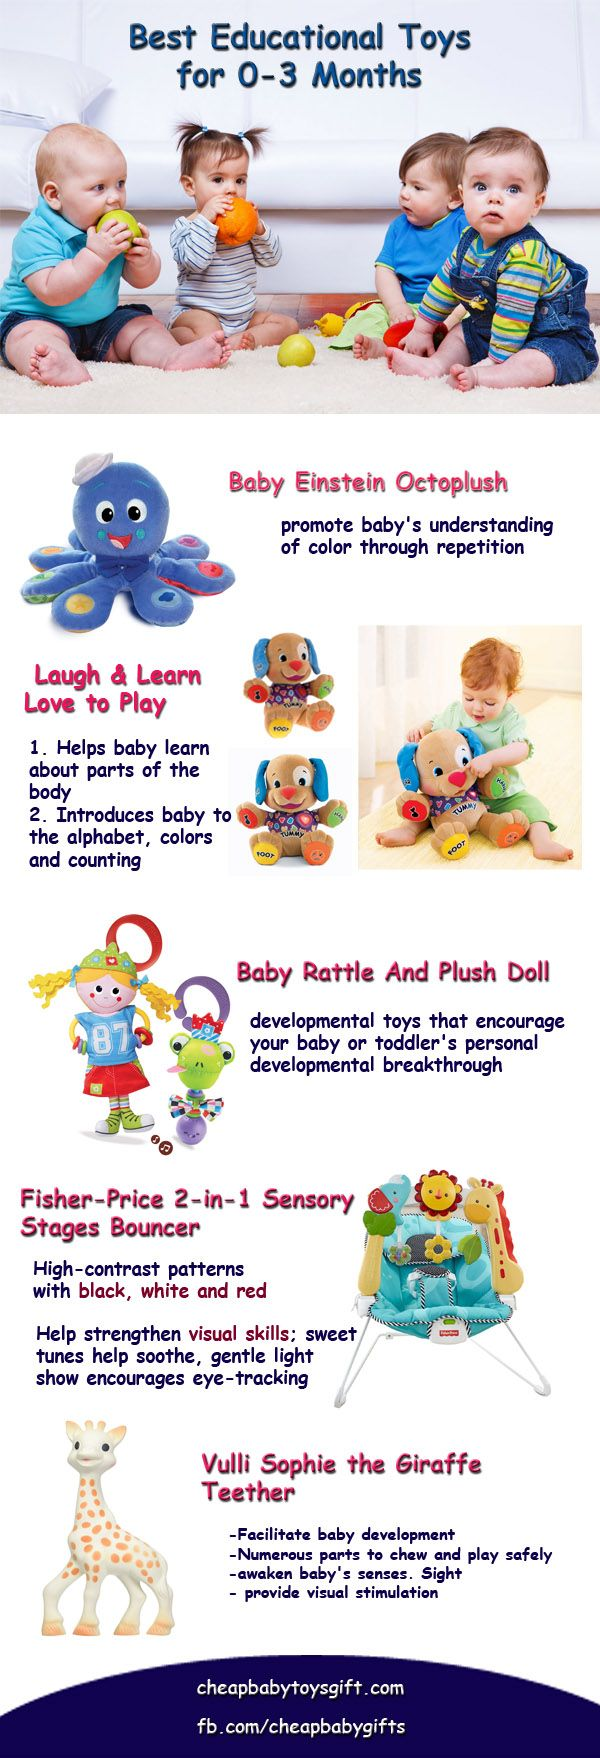 Toys for newborns: how to choose the right mobile for a child, developing a mat and the first rattle